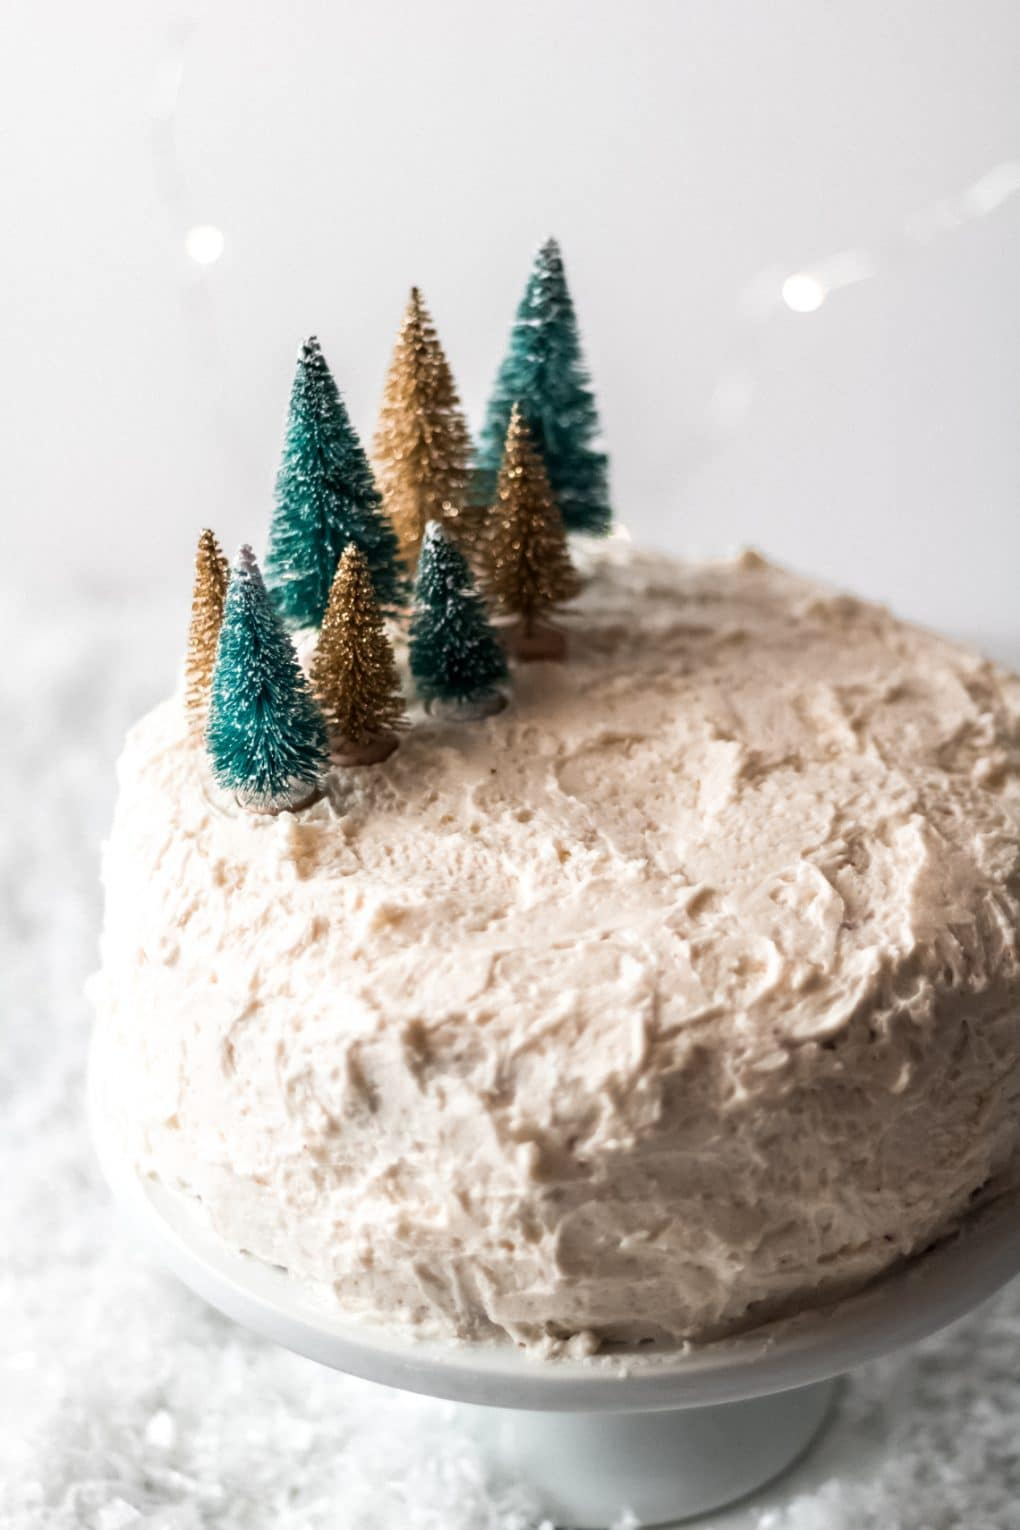 a red velvet cake covered with white butter roux icing on a white cake stand. It has miniature gold and green bottle brush trees grouped together on the left side of the cake.